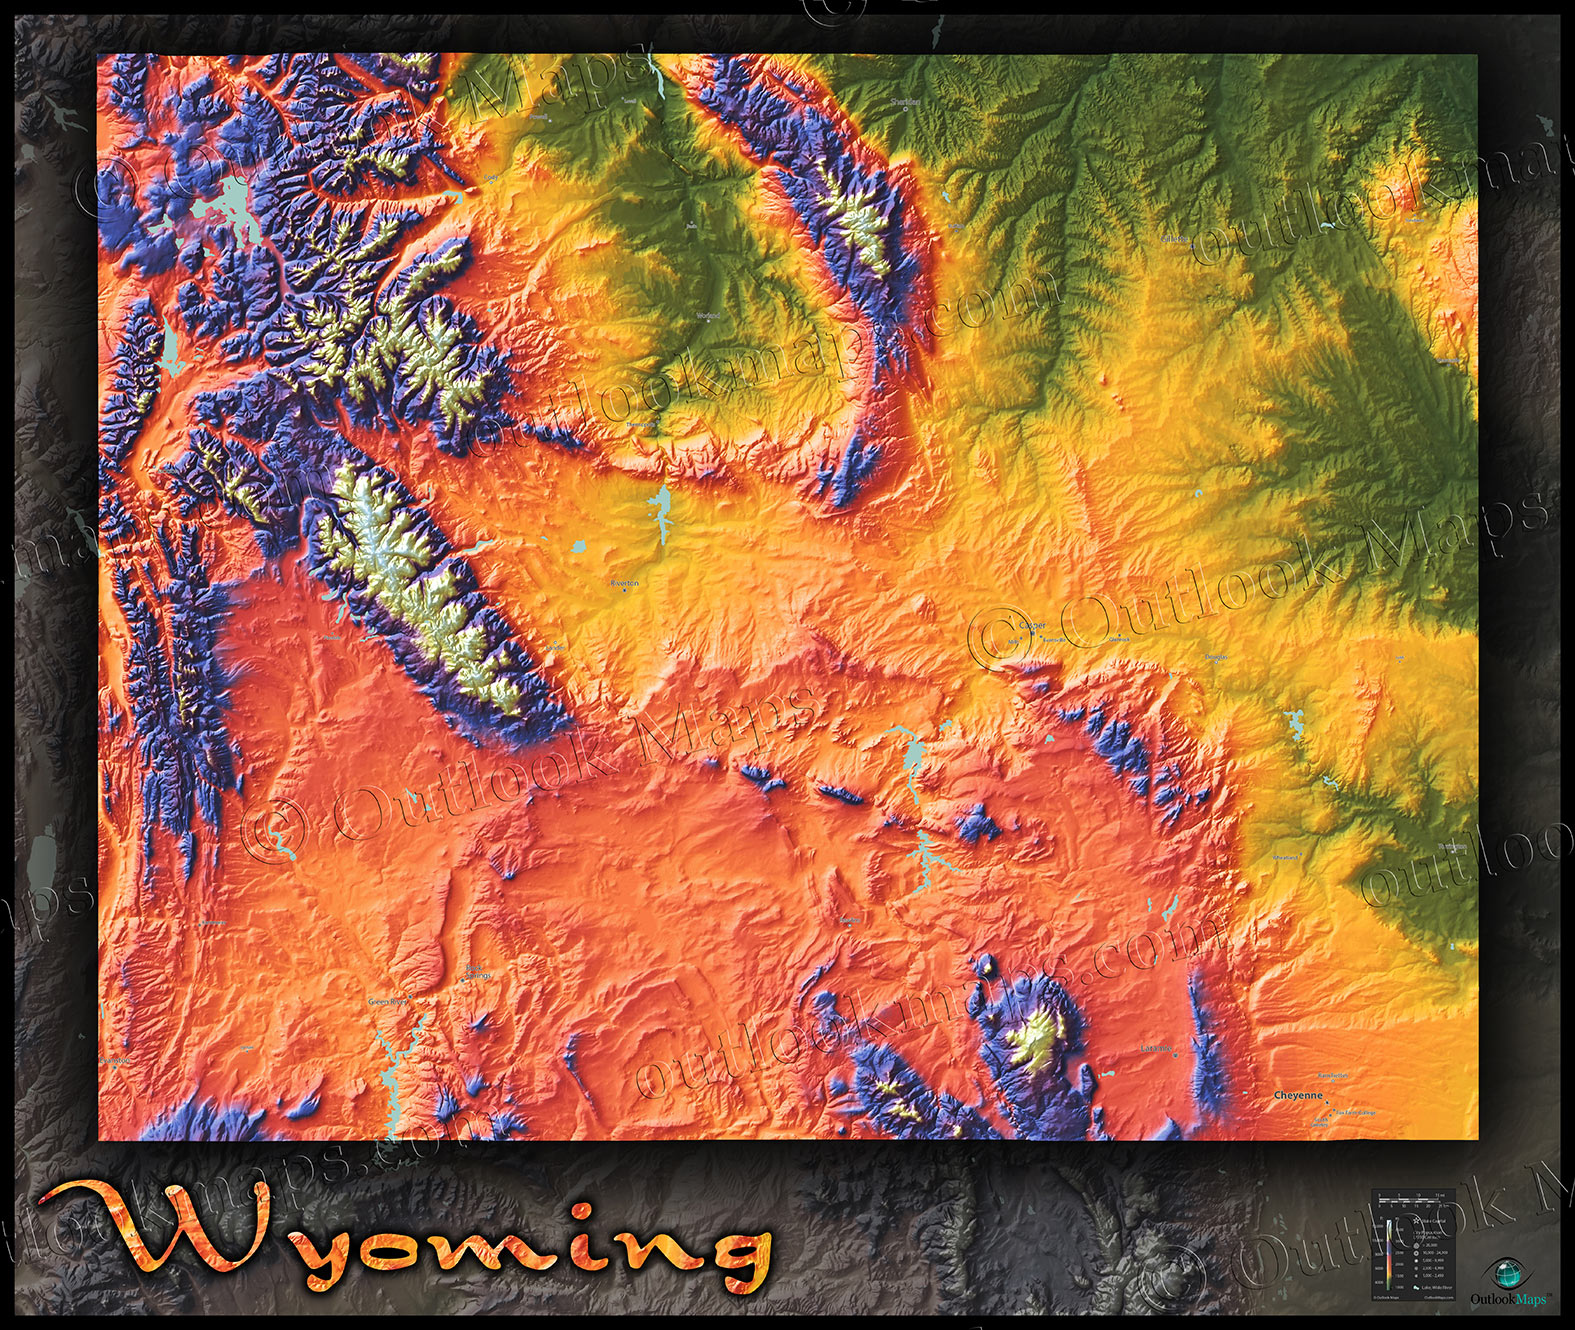 Mountain View Wyoming Map.Wyoming Topography Map Colorful Mountains Terrain